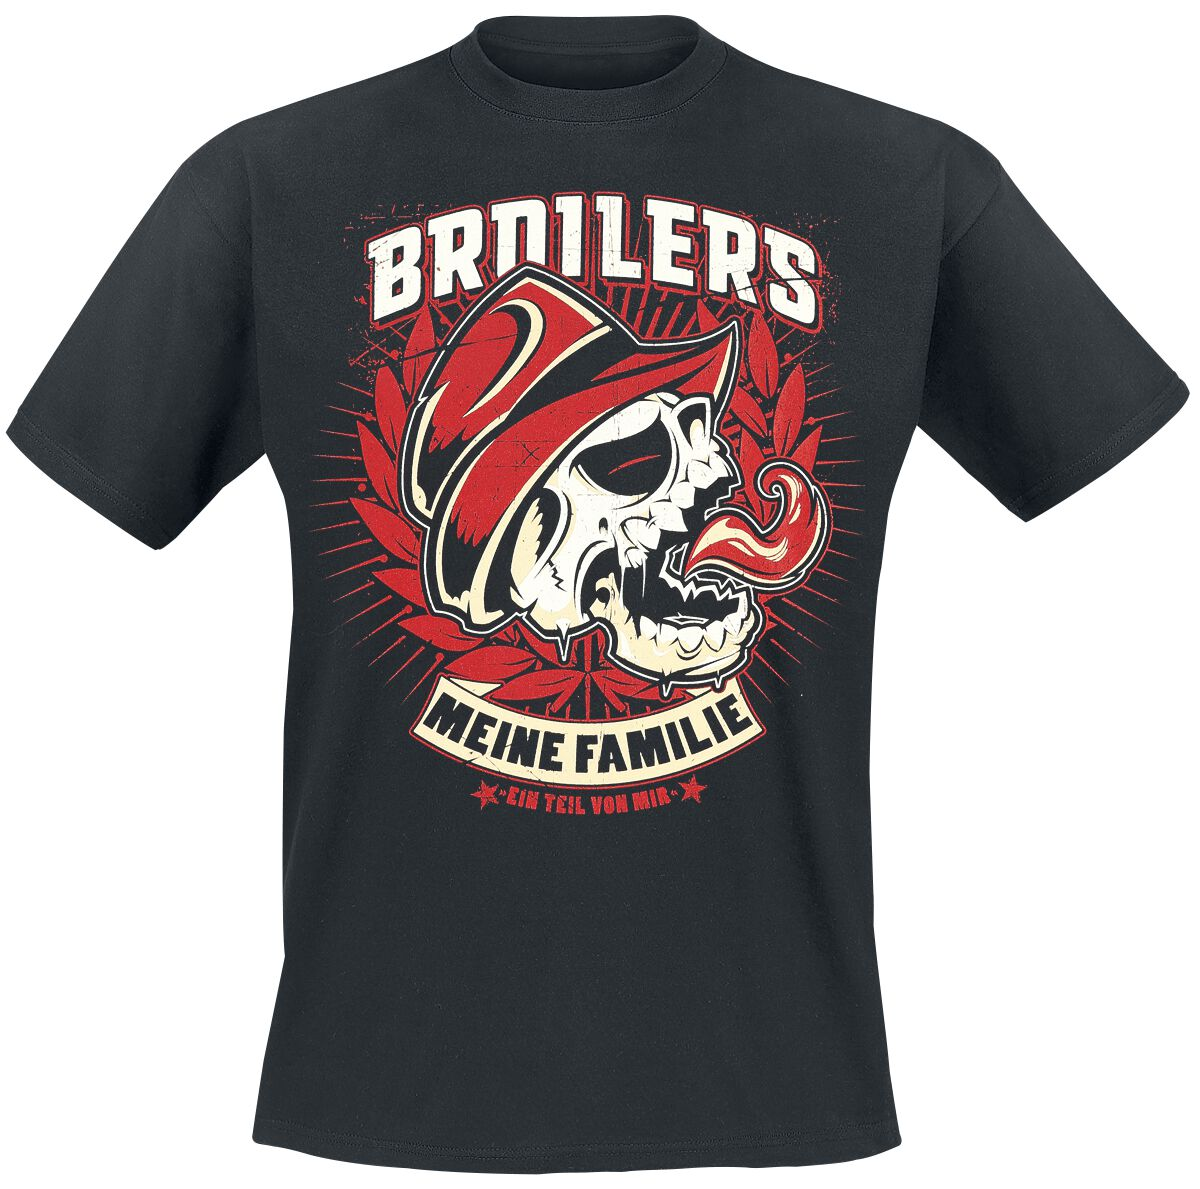 Image of   Broilers Meine Familie T-Shirt sort